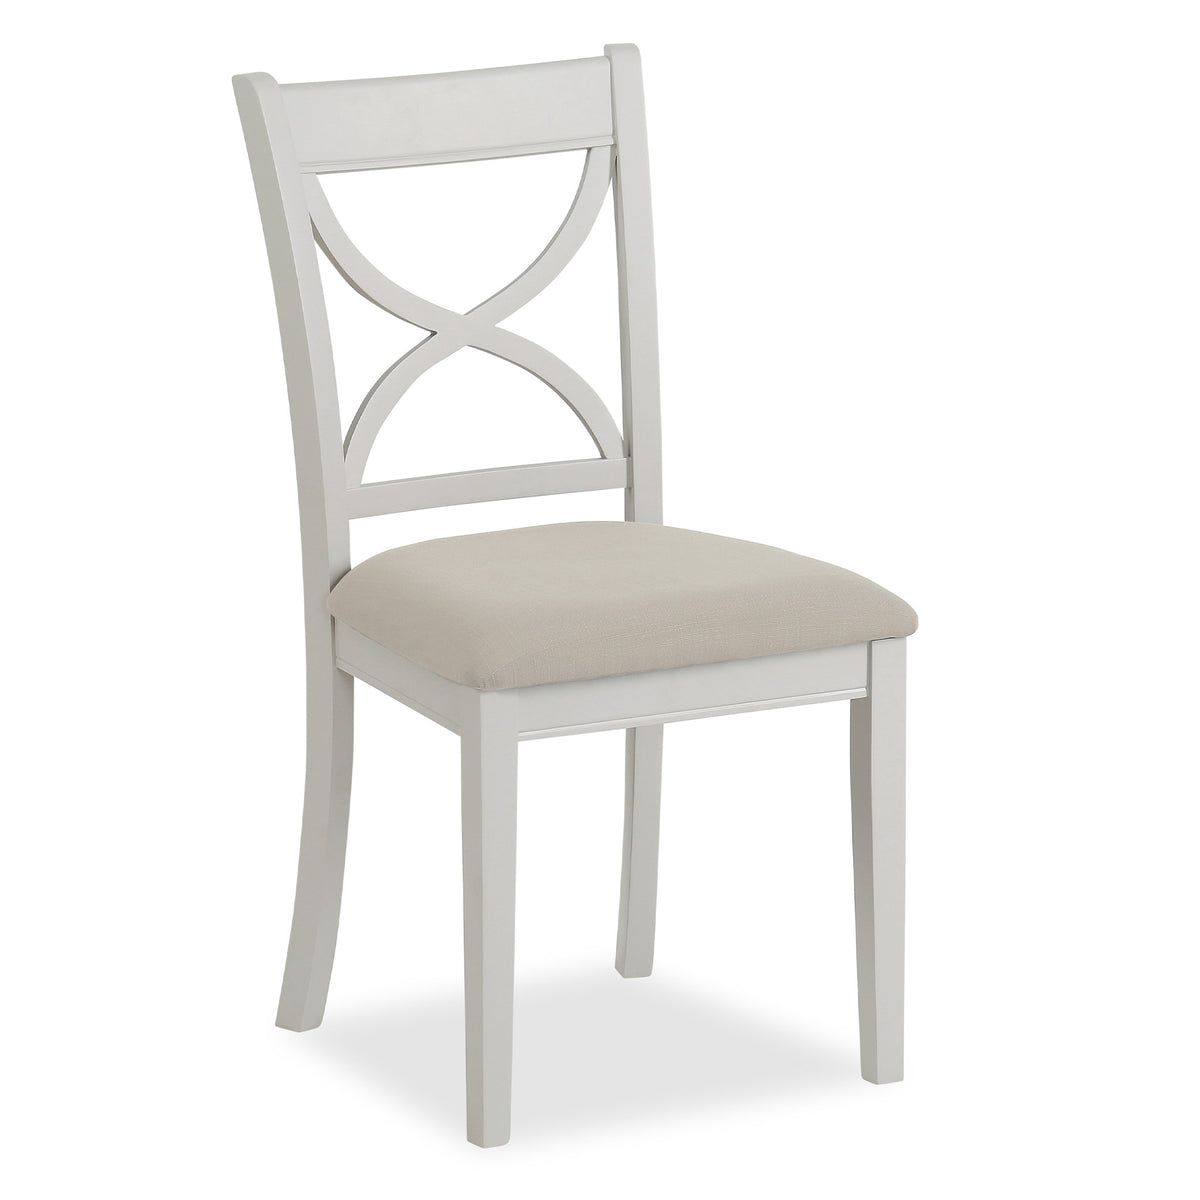 Melrose Grey Dining Chair from Roseland Furniture